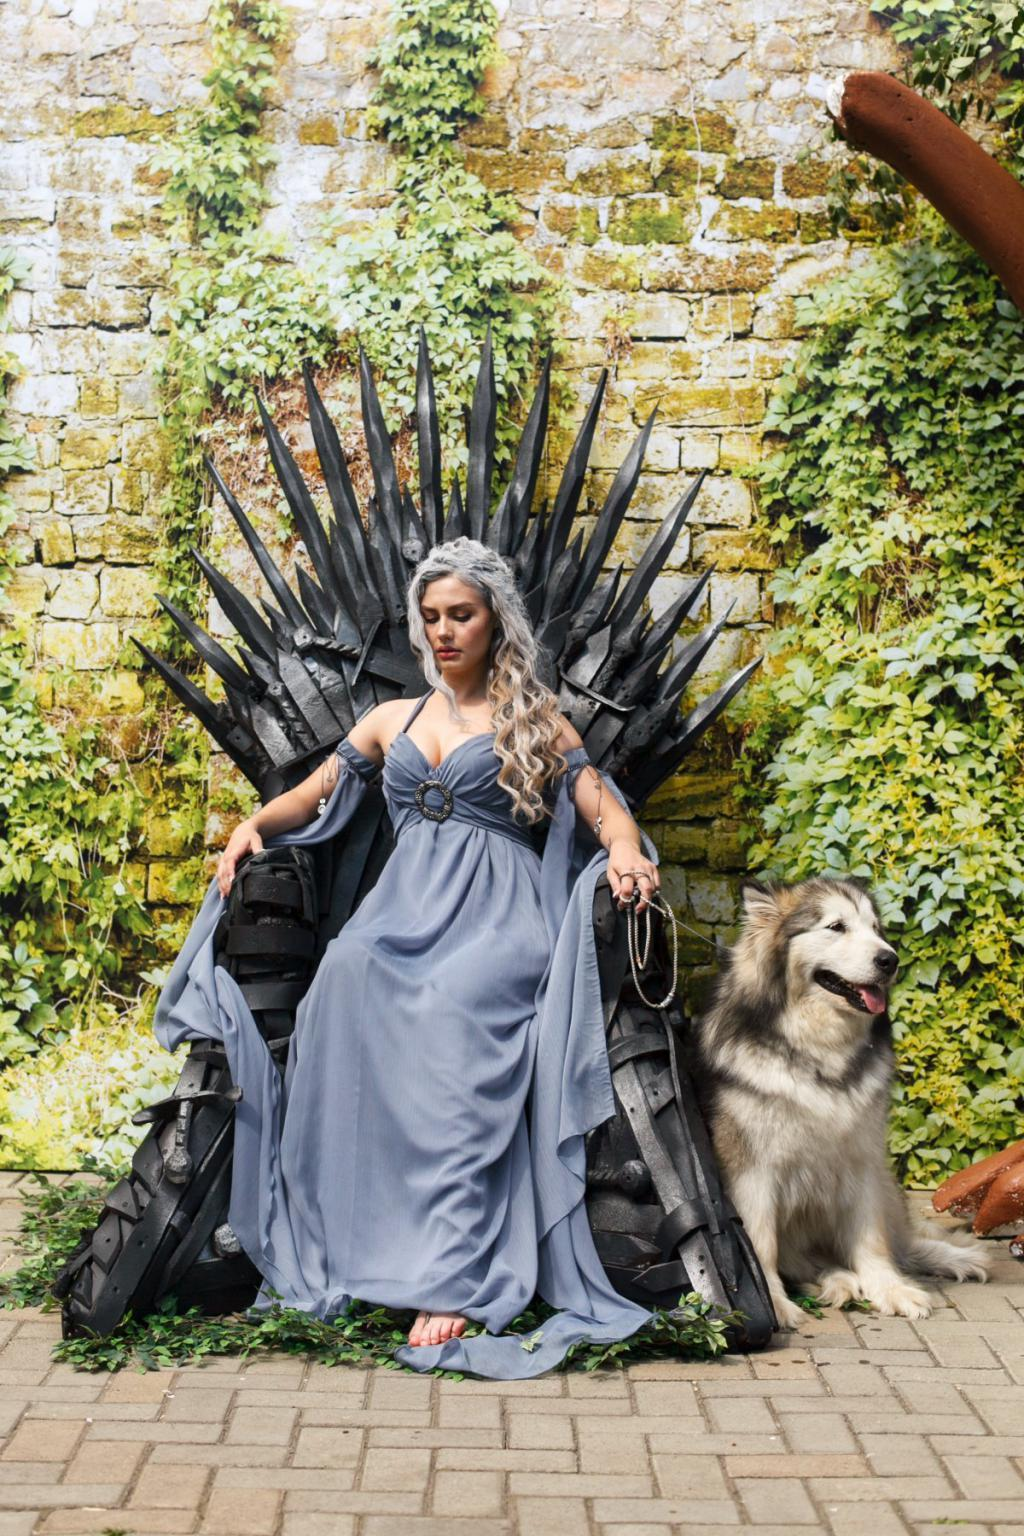 game-of-thrones-wedding-photo-editing-sample